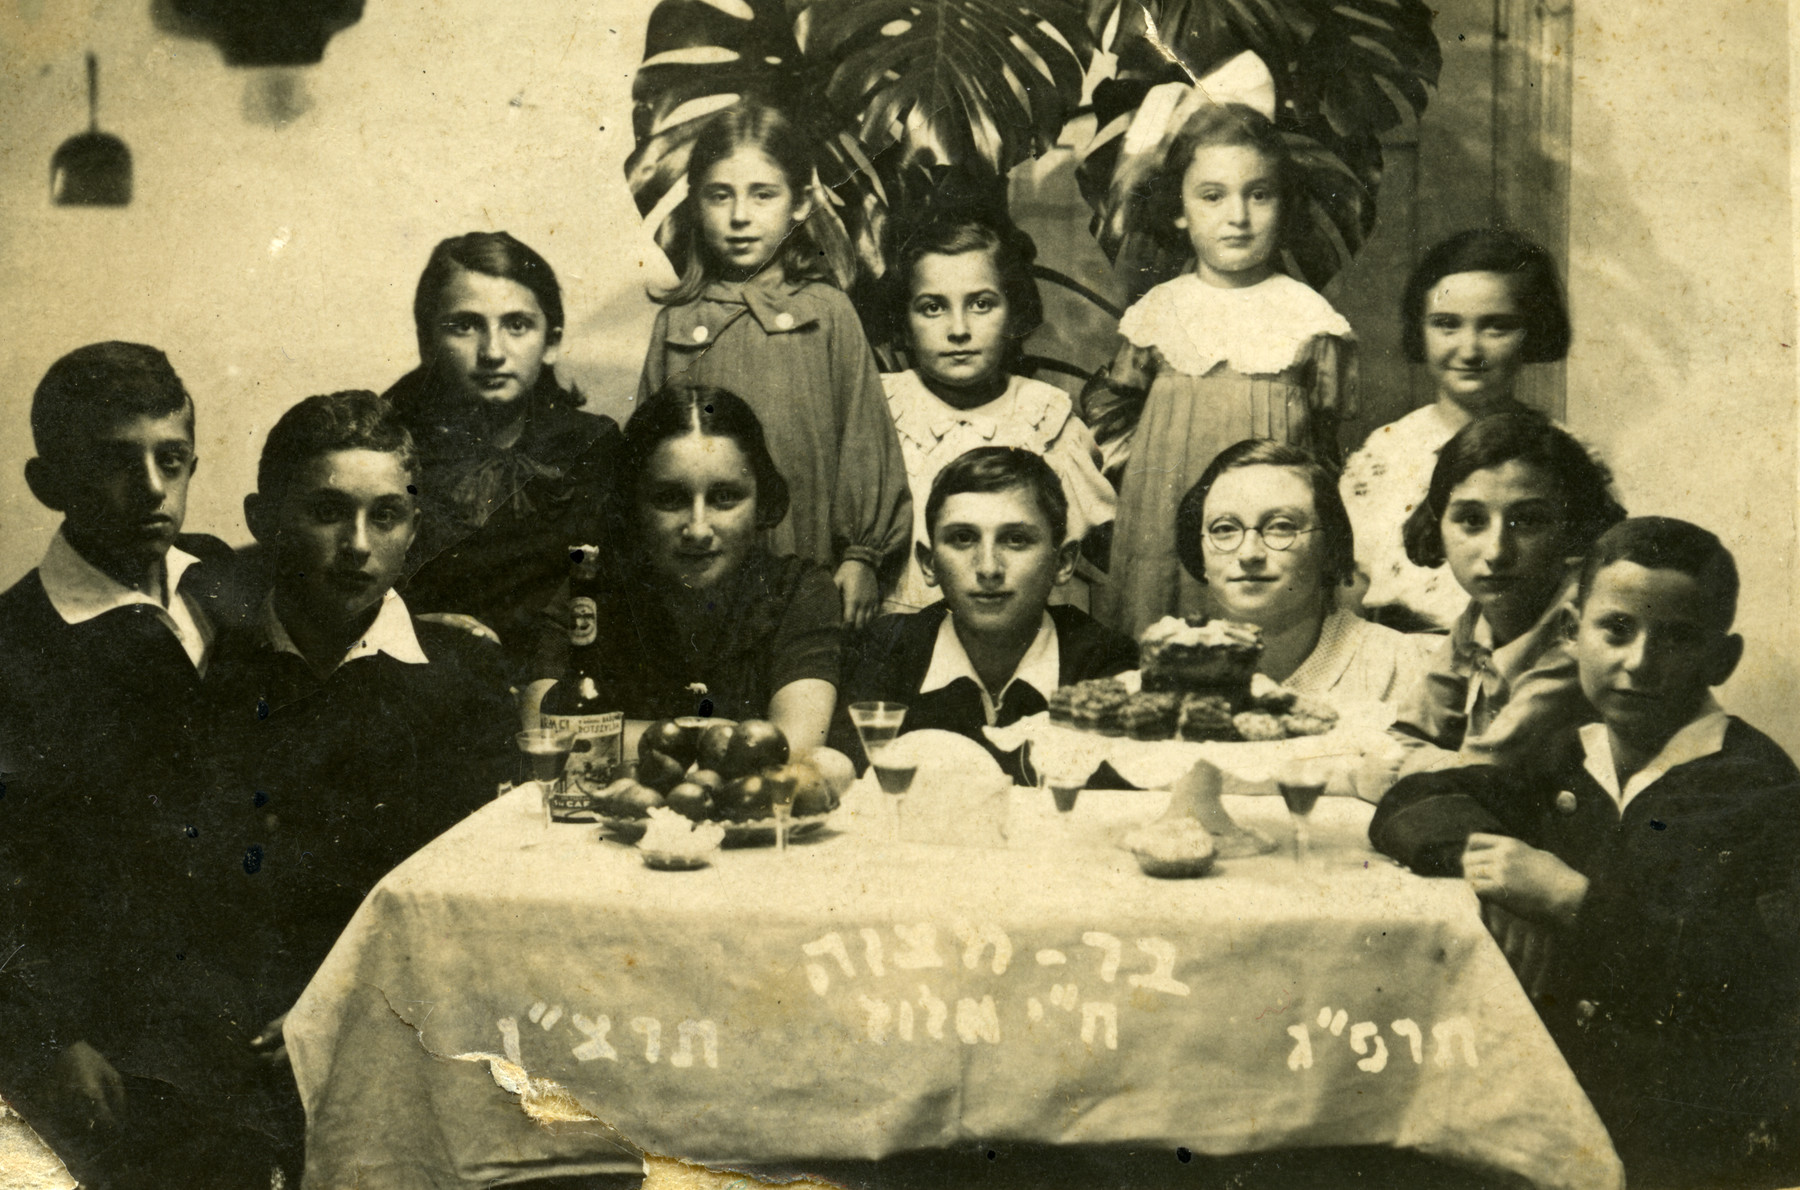 Children gather around a table to celebrate the bar mitzvah of Lonek (Leon) Halberstadt in Krasnik Poland.  He is sitting in the center, and his sister Jazda Halberstadt is to his left.  Regina Fryd is standing behind him and Jadza Styck is standing on the right.